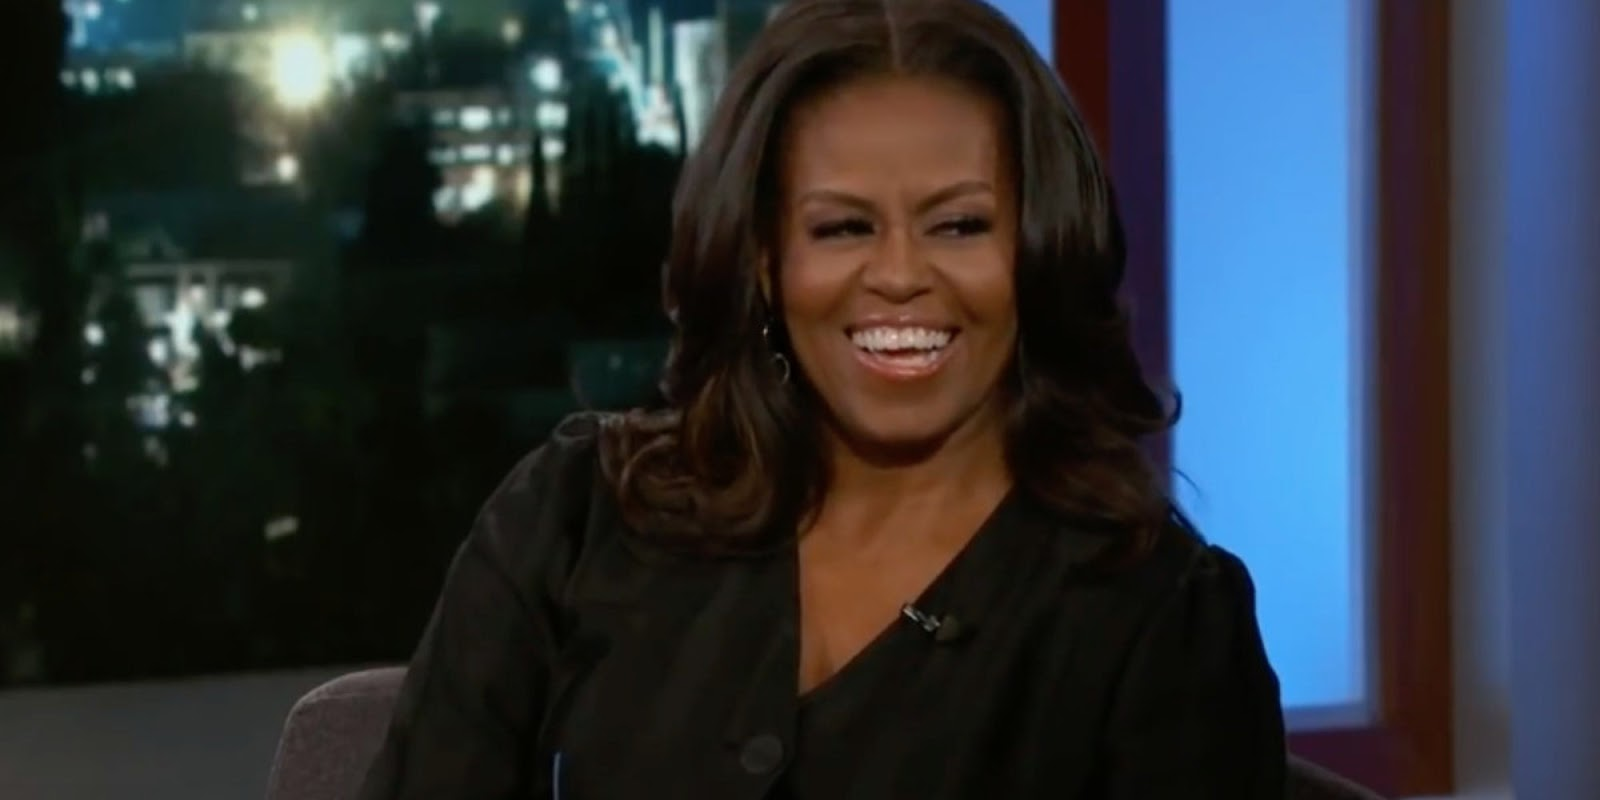 Michelle Obama Was Declared the Most Admired Woman in the World